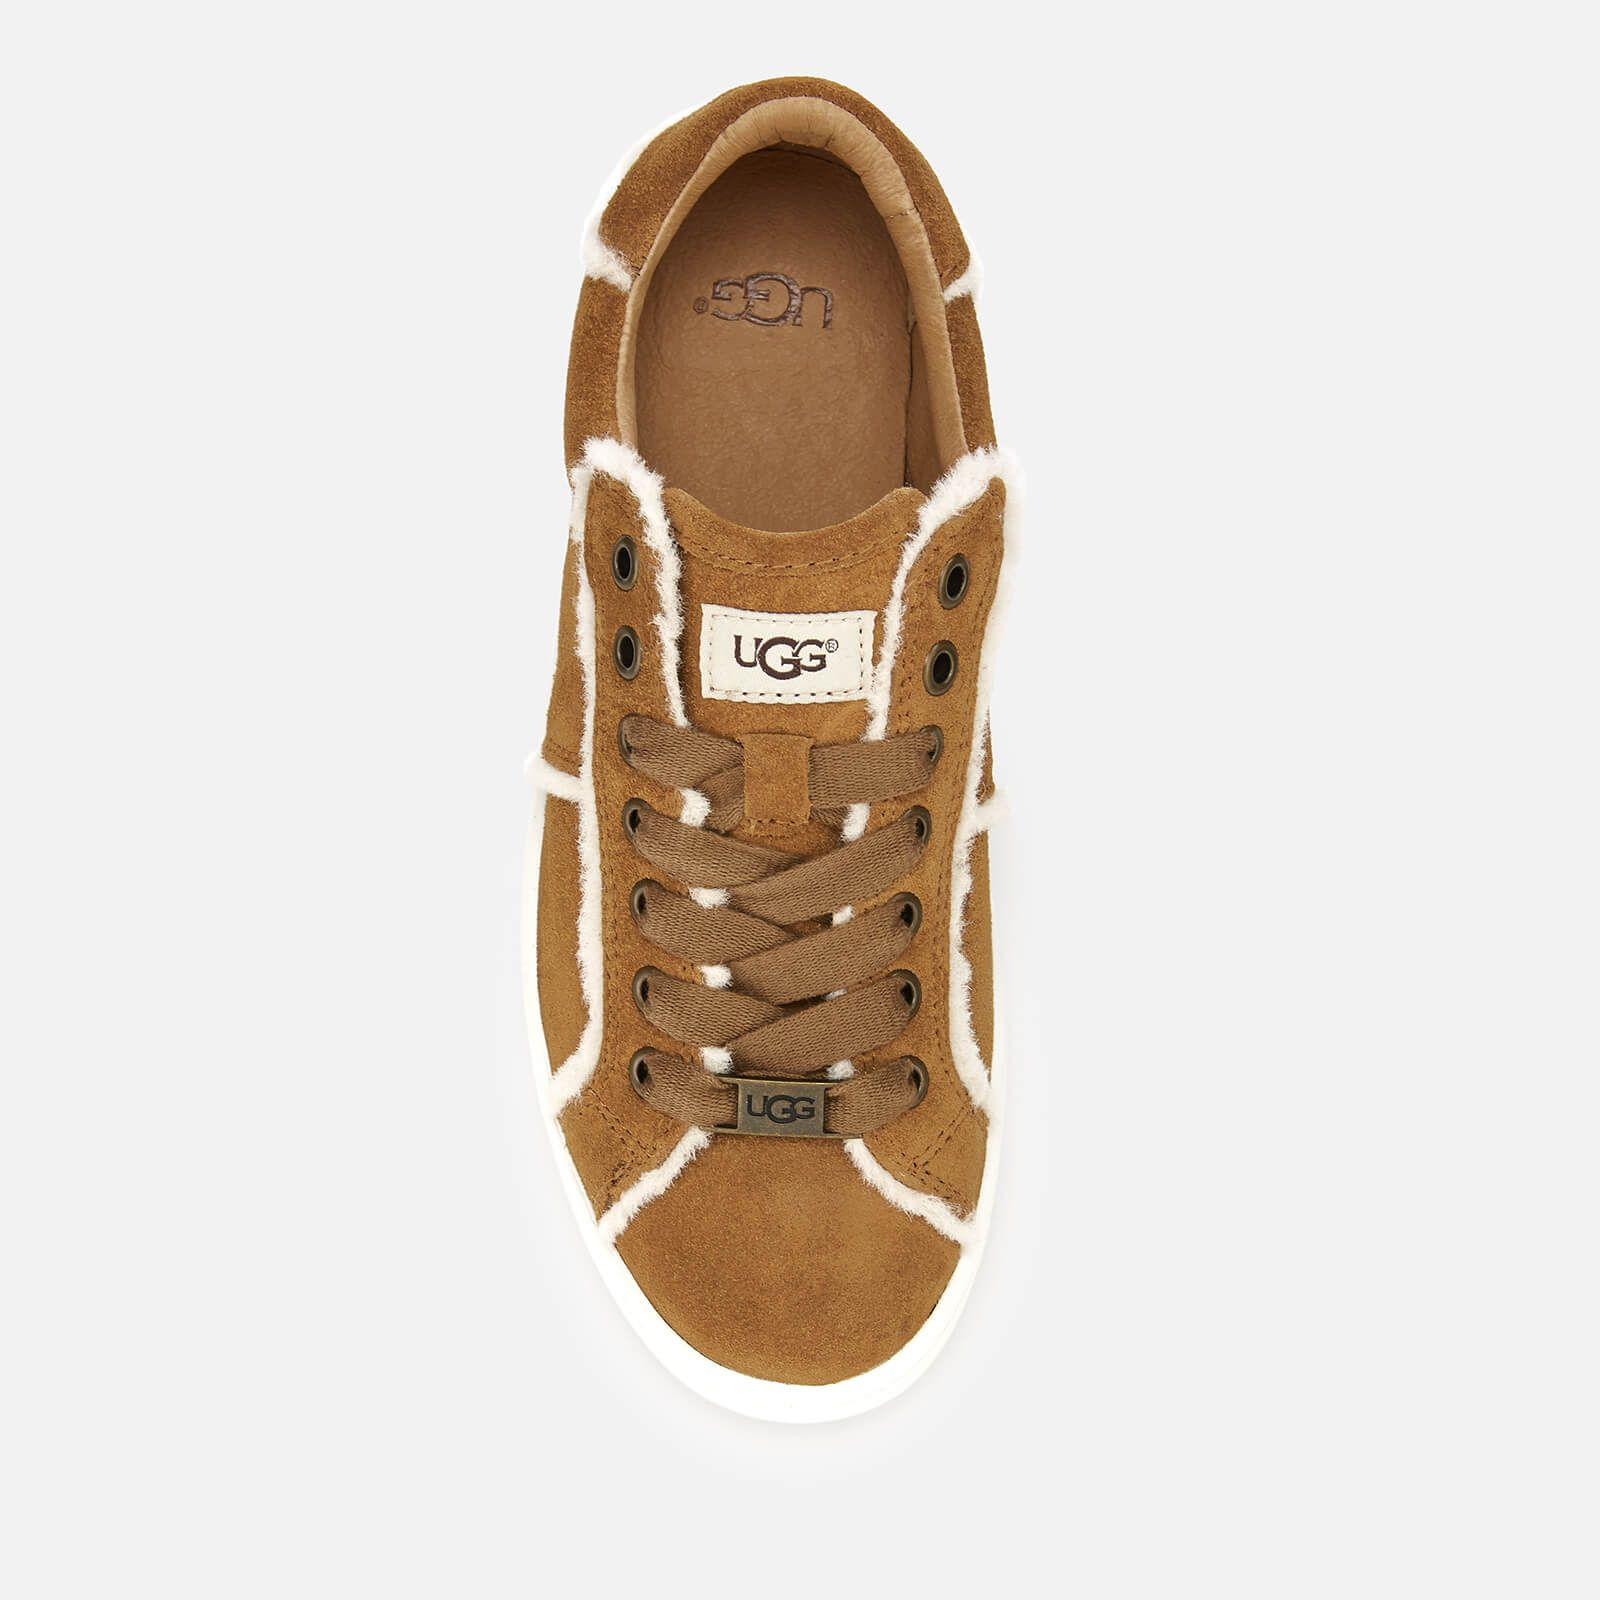 ce3a8d5726f UGG Women's Milo Spill Seam Suede Trainers - Chestnut in 2019 ...